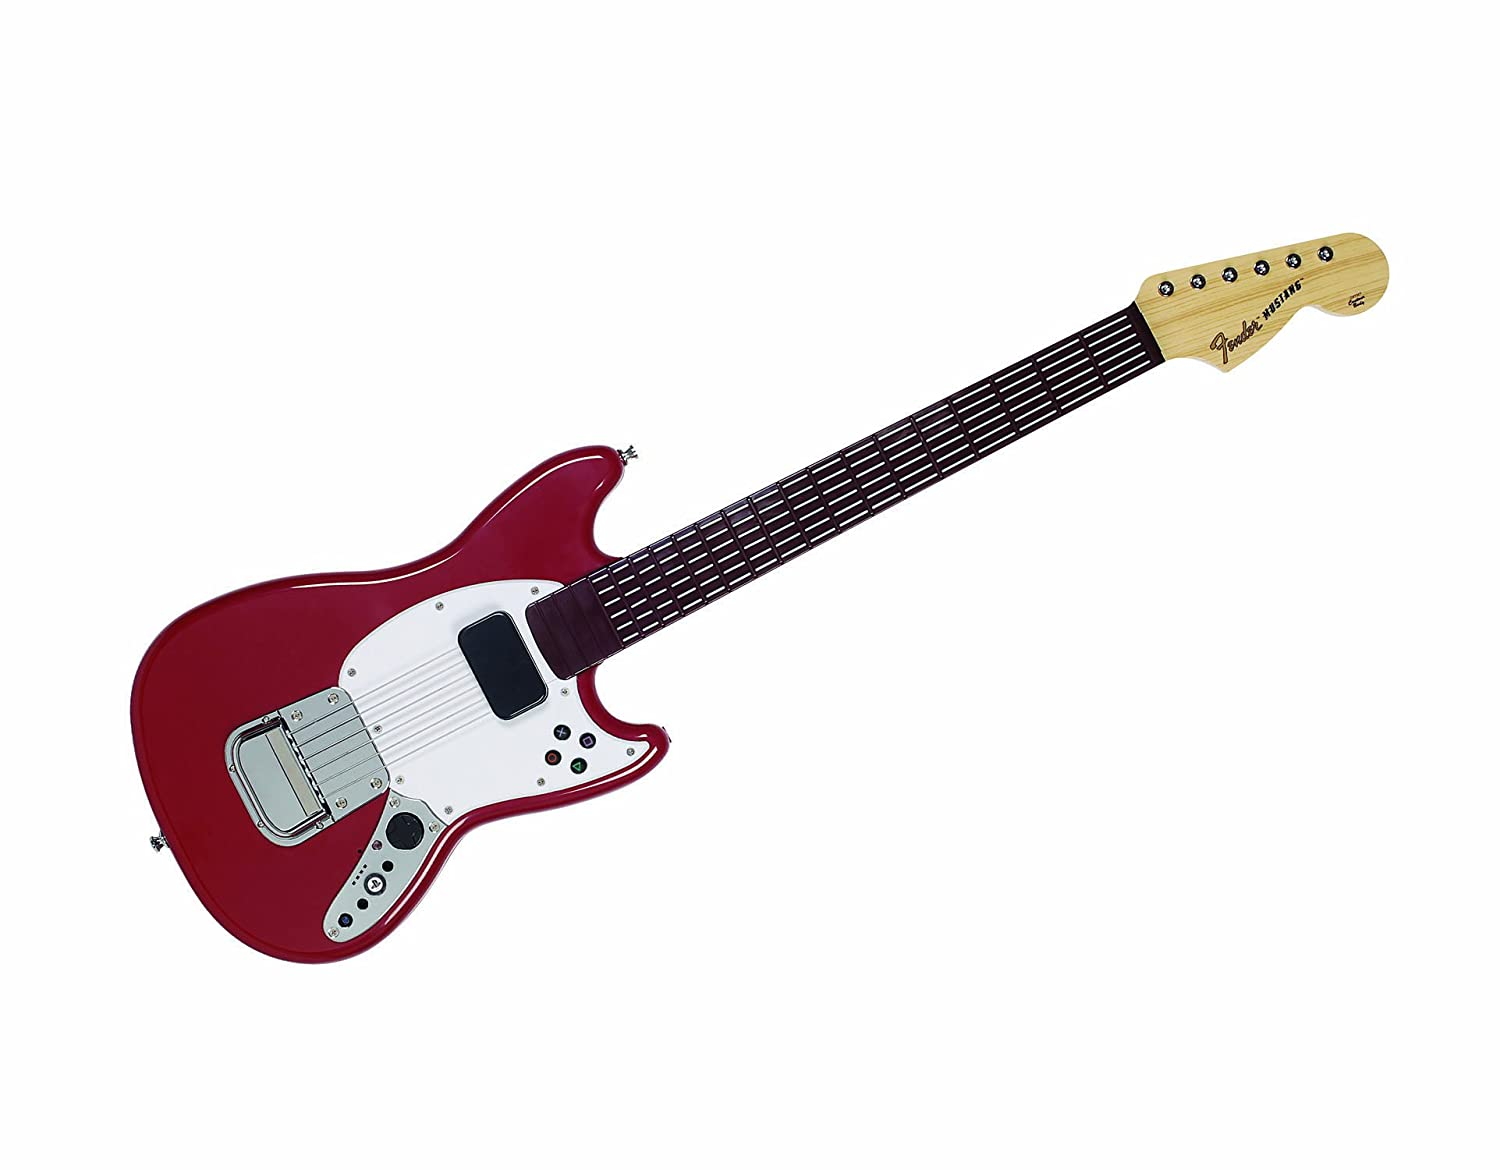 Mad Catz Rock Band 3 Wireless Fender Mustang PRO-Guitar Controller for PlayStation 3: Amazon.es: Videojuegos